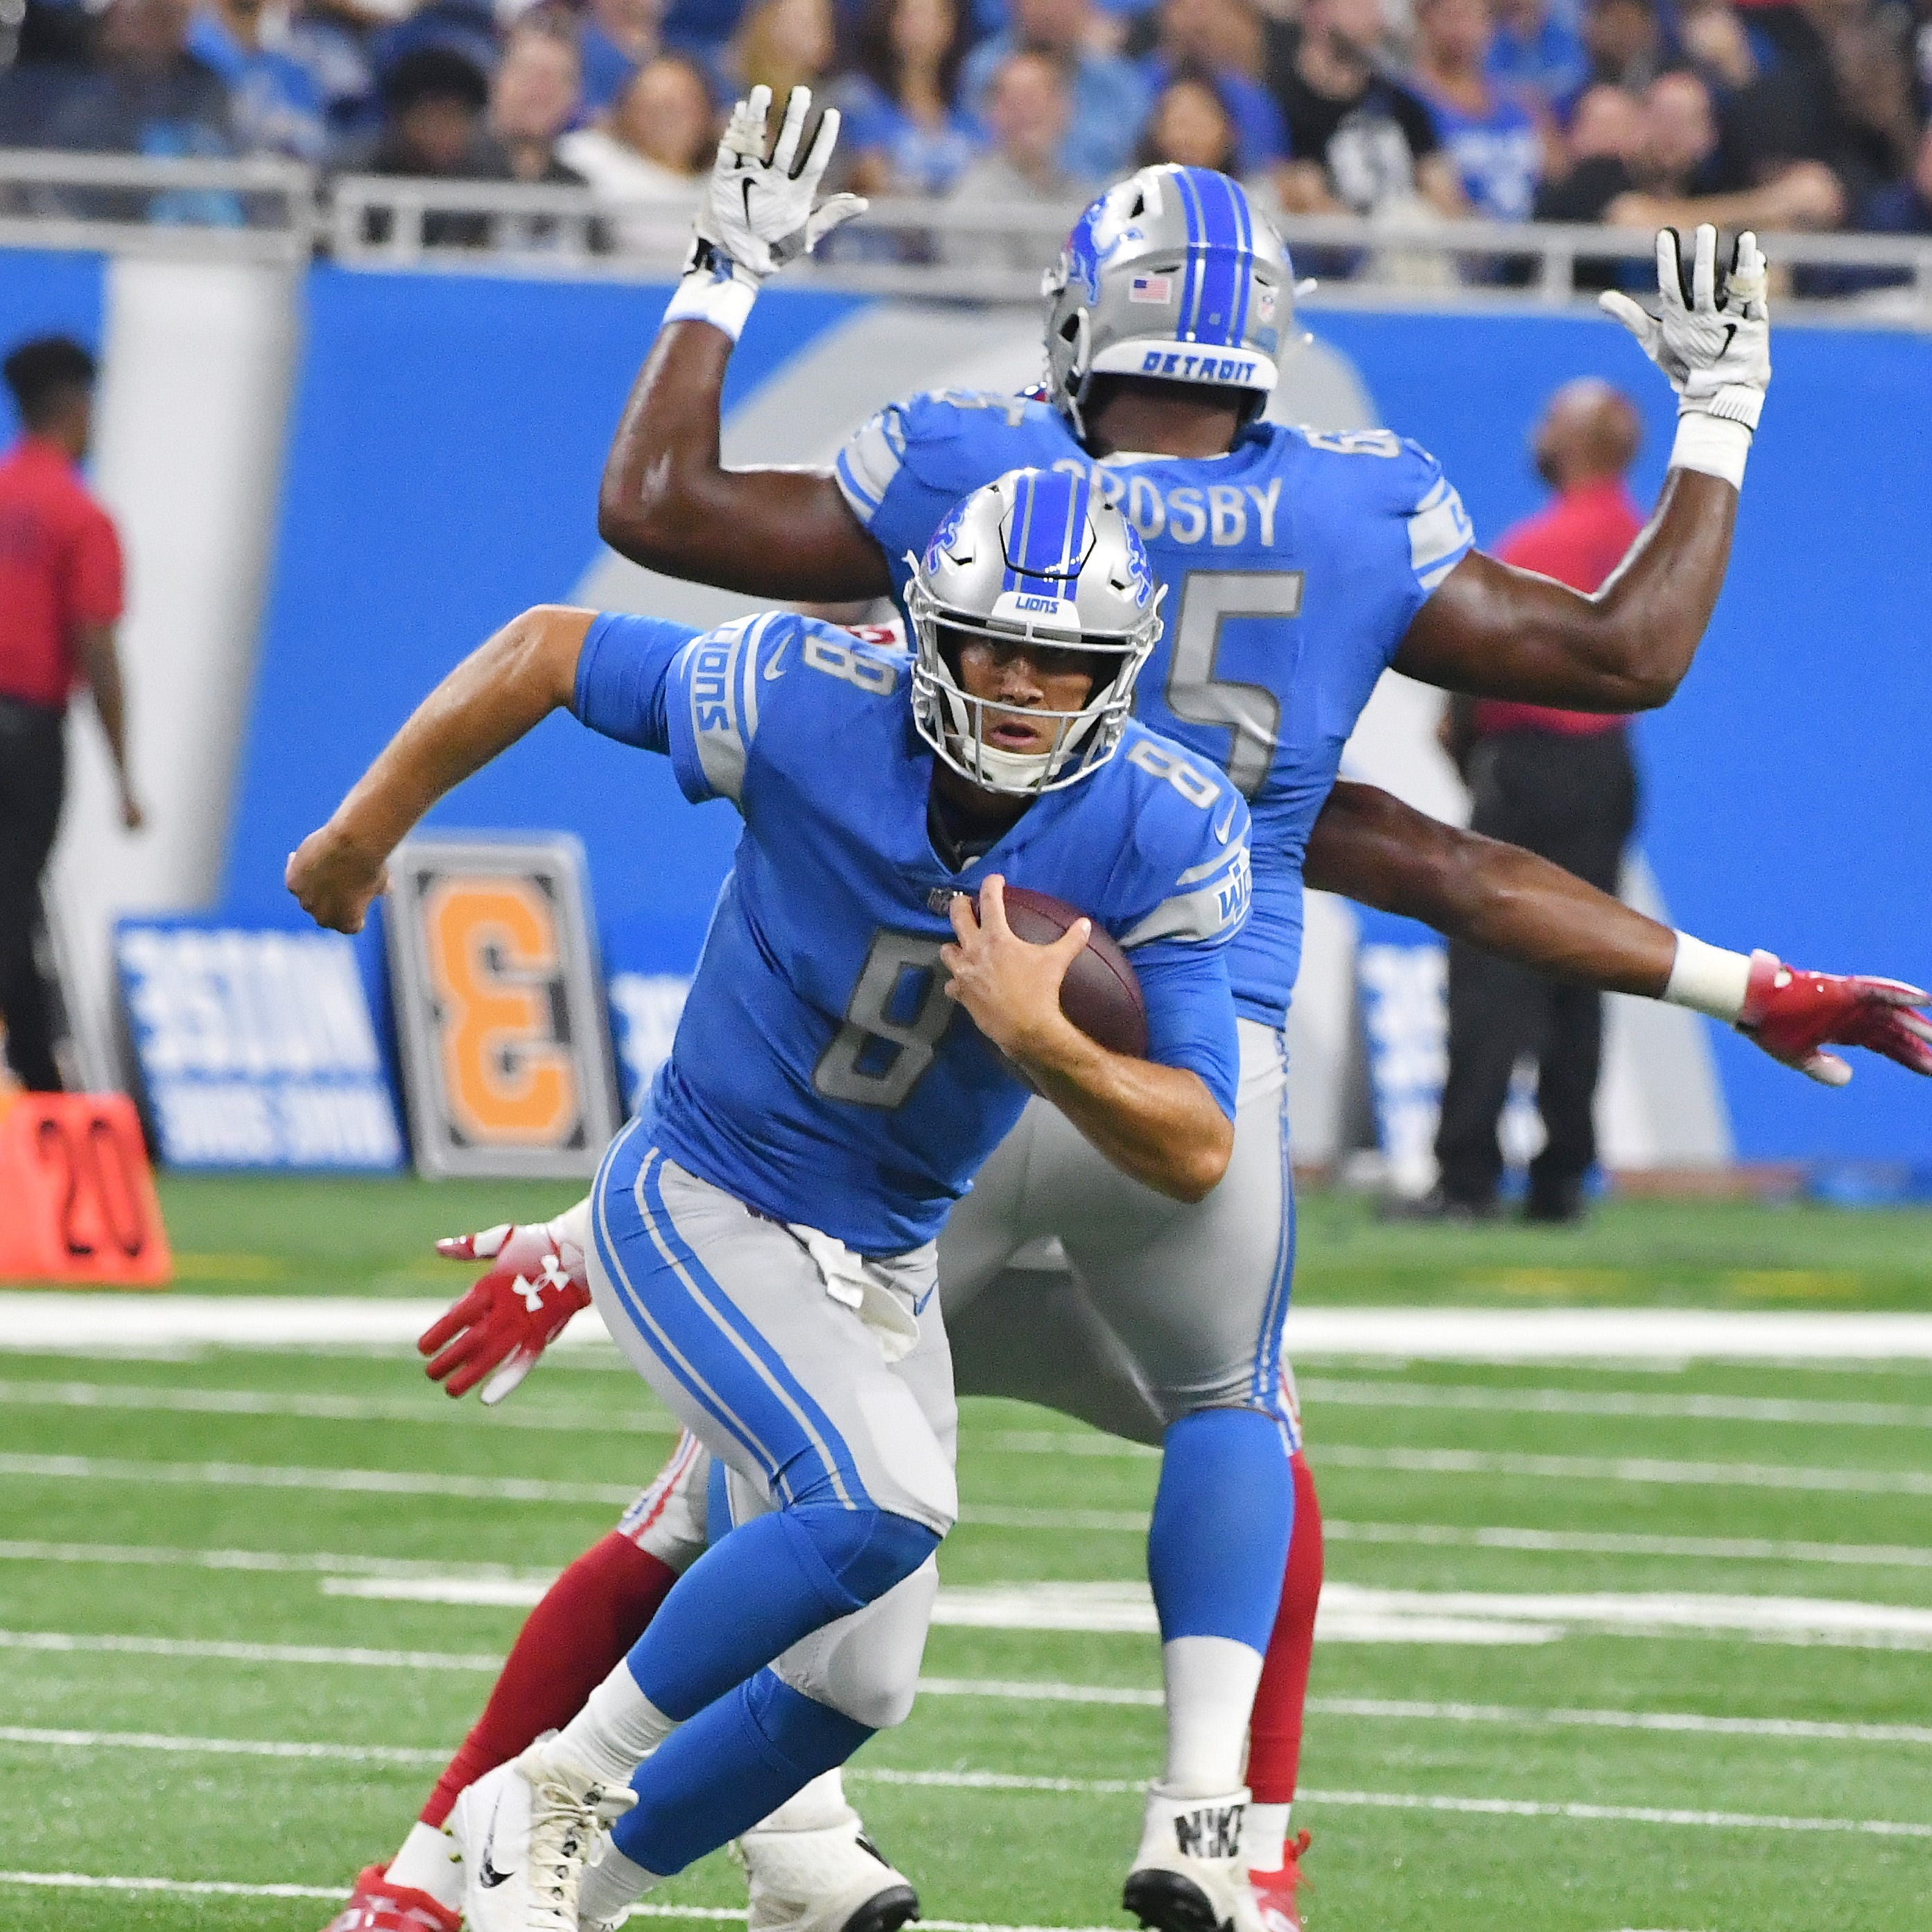 Lions quarterback Matt Cassel scrambles out of the pocket for a gain in the third quarter during Friday's preseason game against the New York Giants.